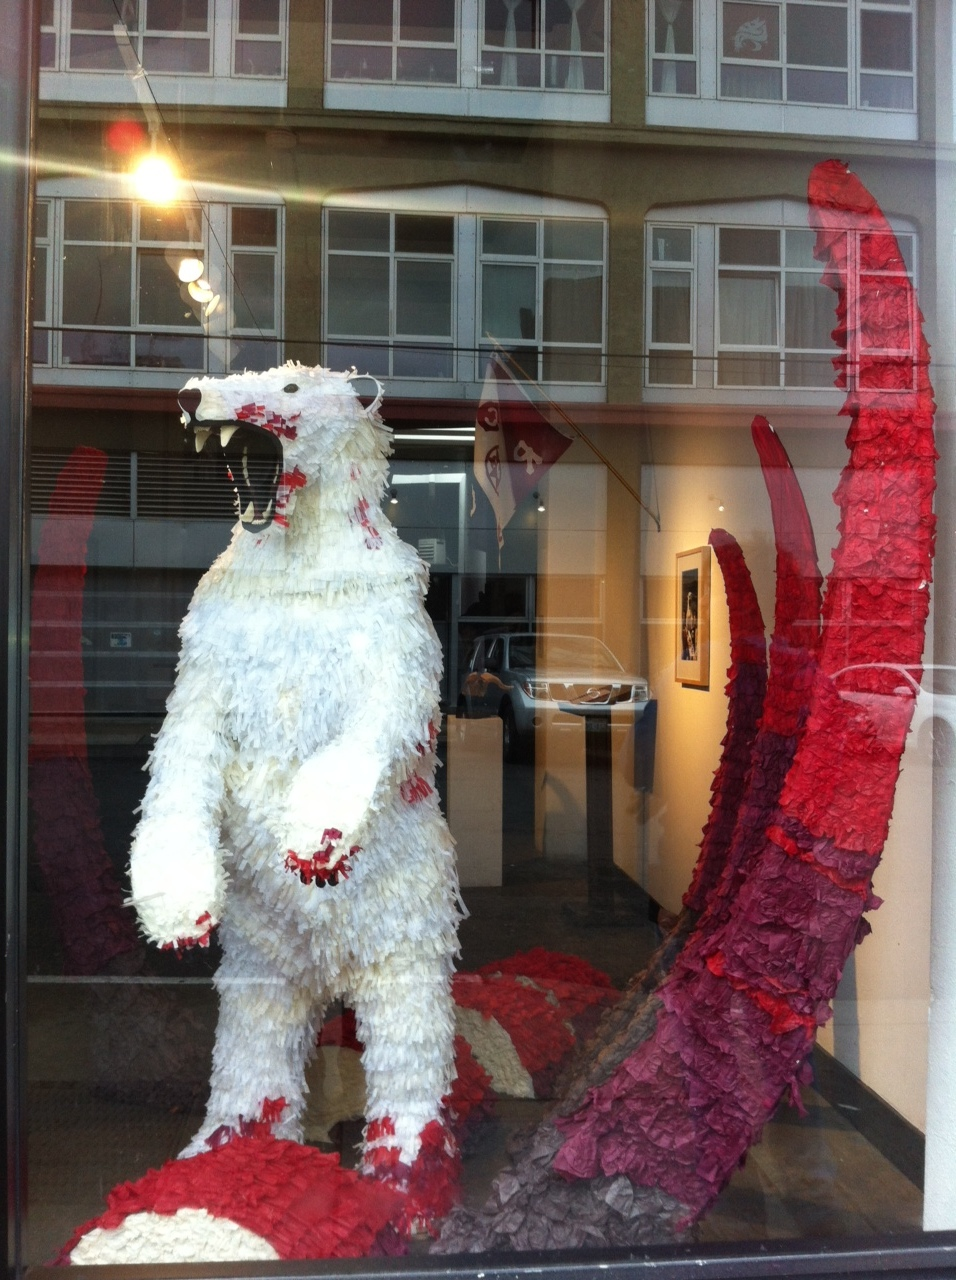 The Bear and the Whale Vermillion Gallery 2012